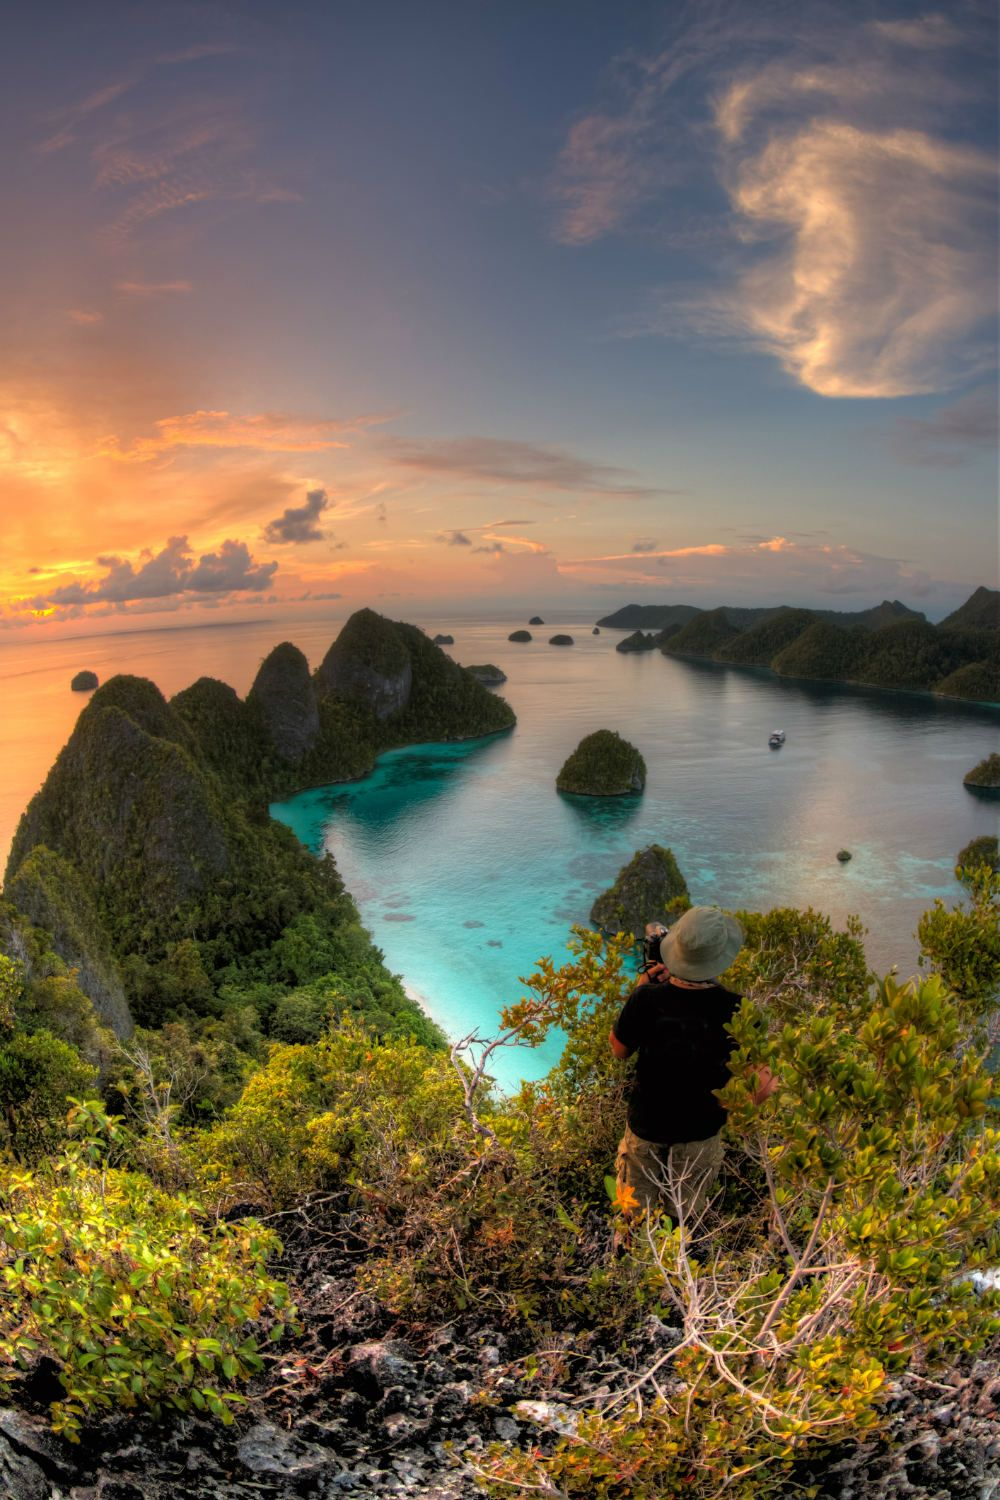 25 Dazzling Photos of the Most Beautiful Places in Indonesia